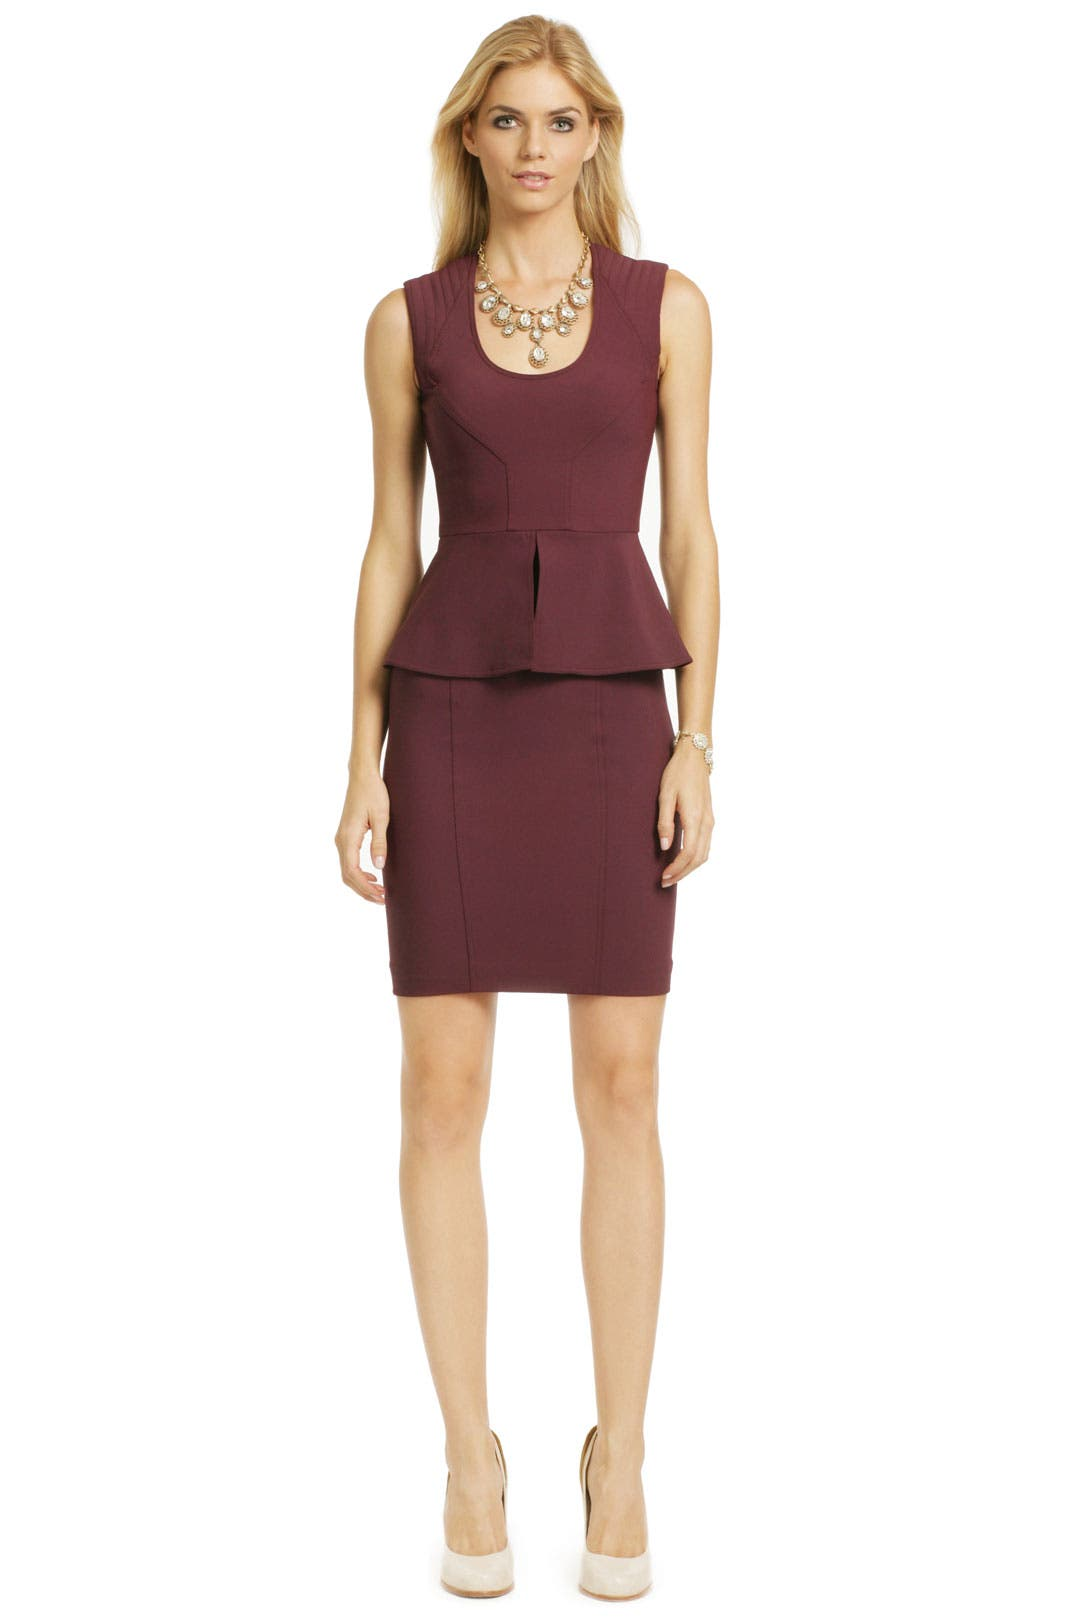 So Little Time Dress by Yigal Azrouël